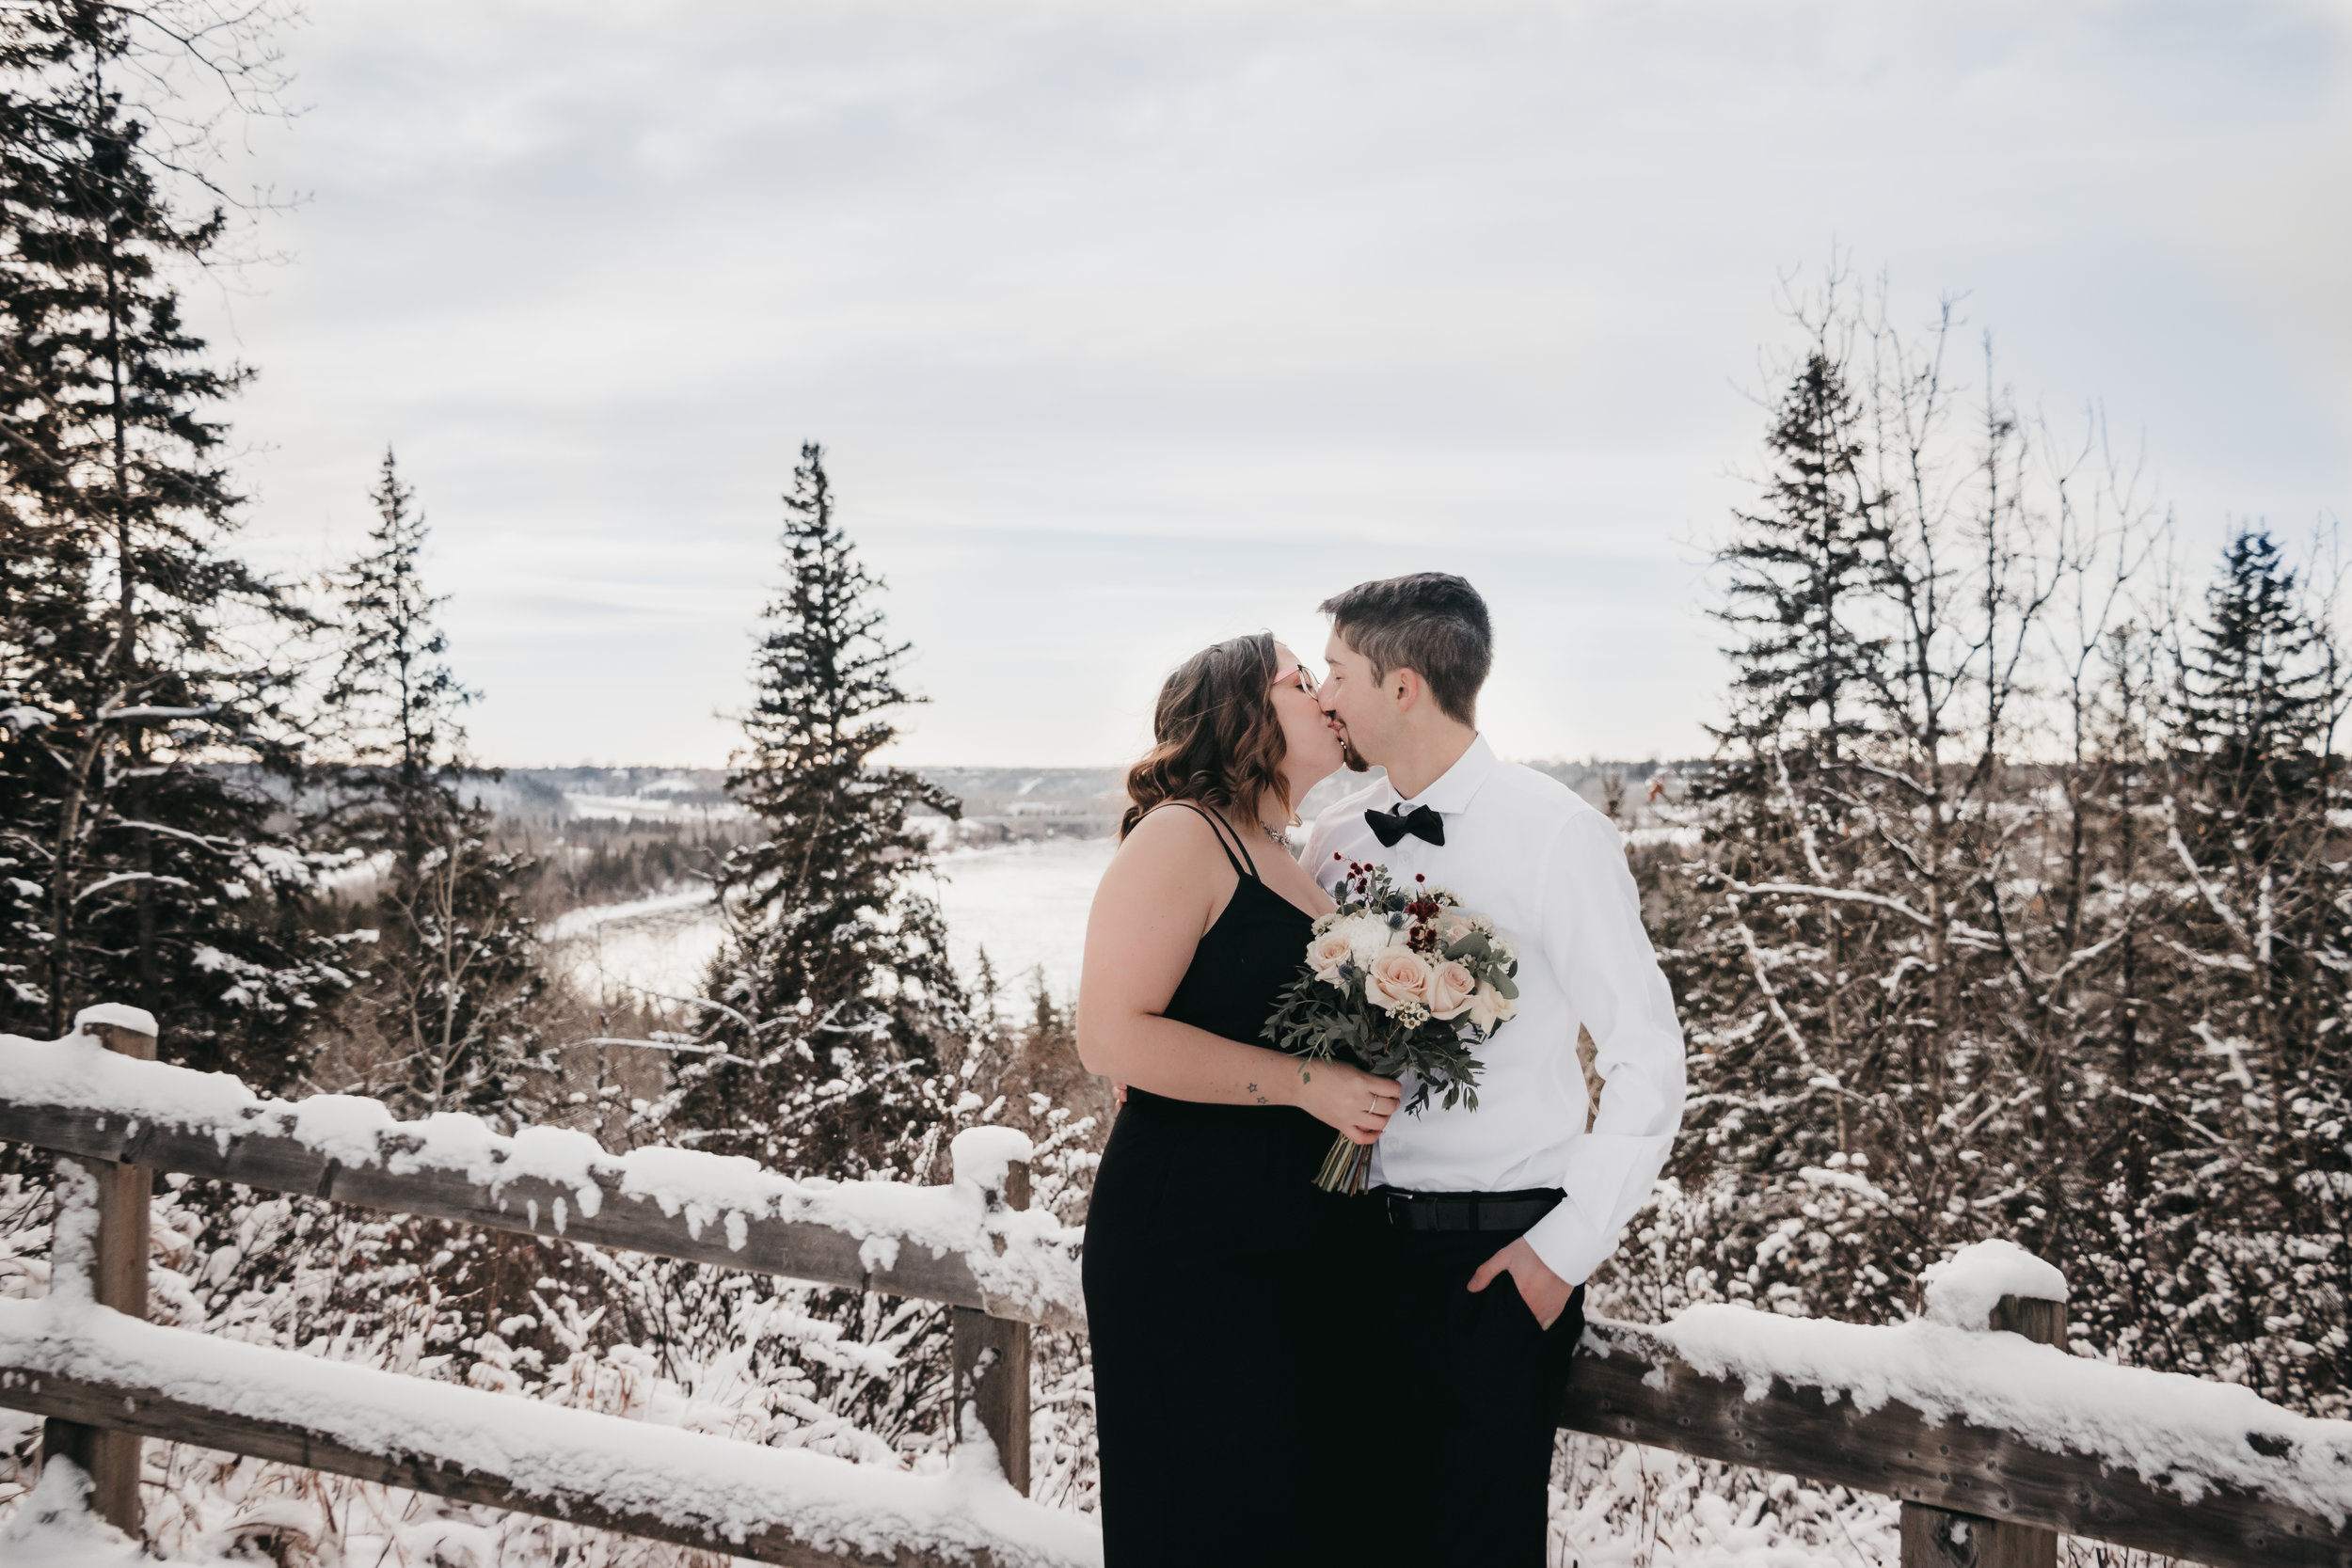 Chris & Emma | Edmonton Elopement | Edmonton Wedding Photographer